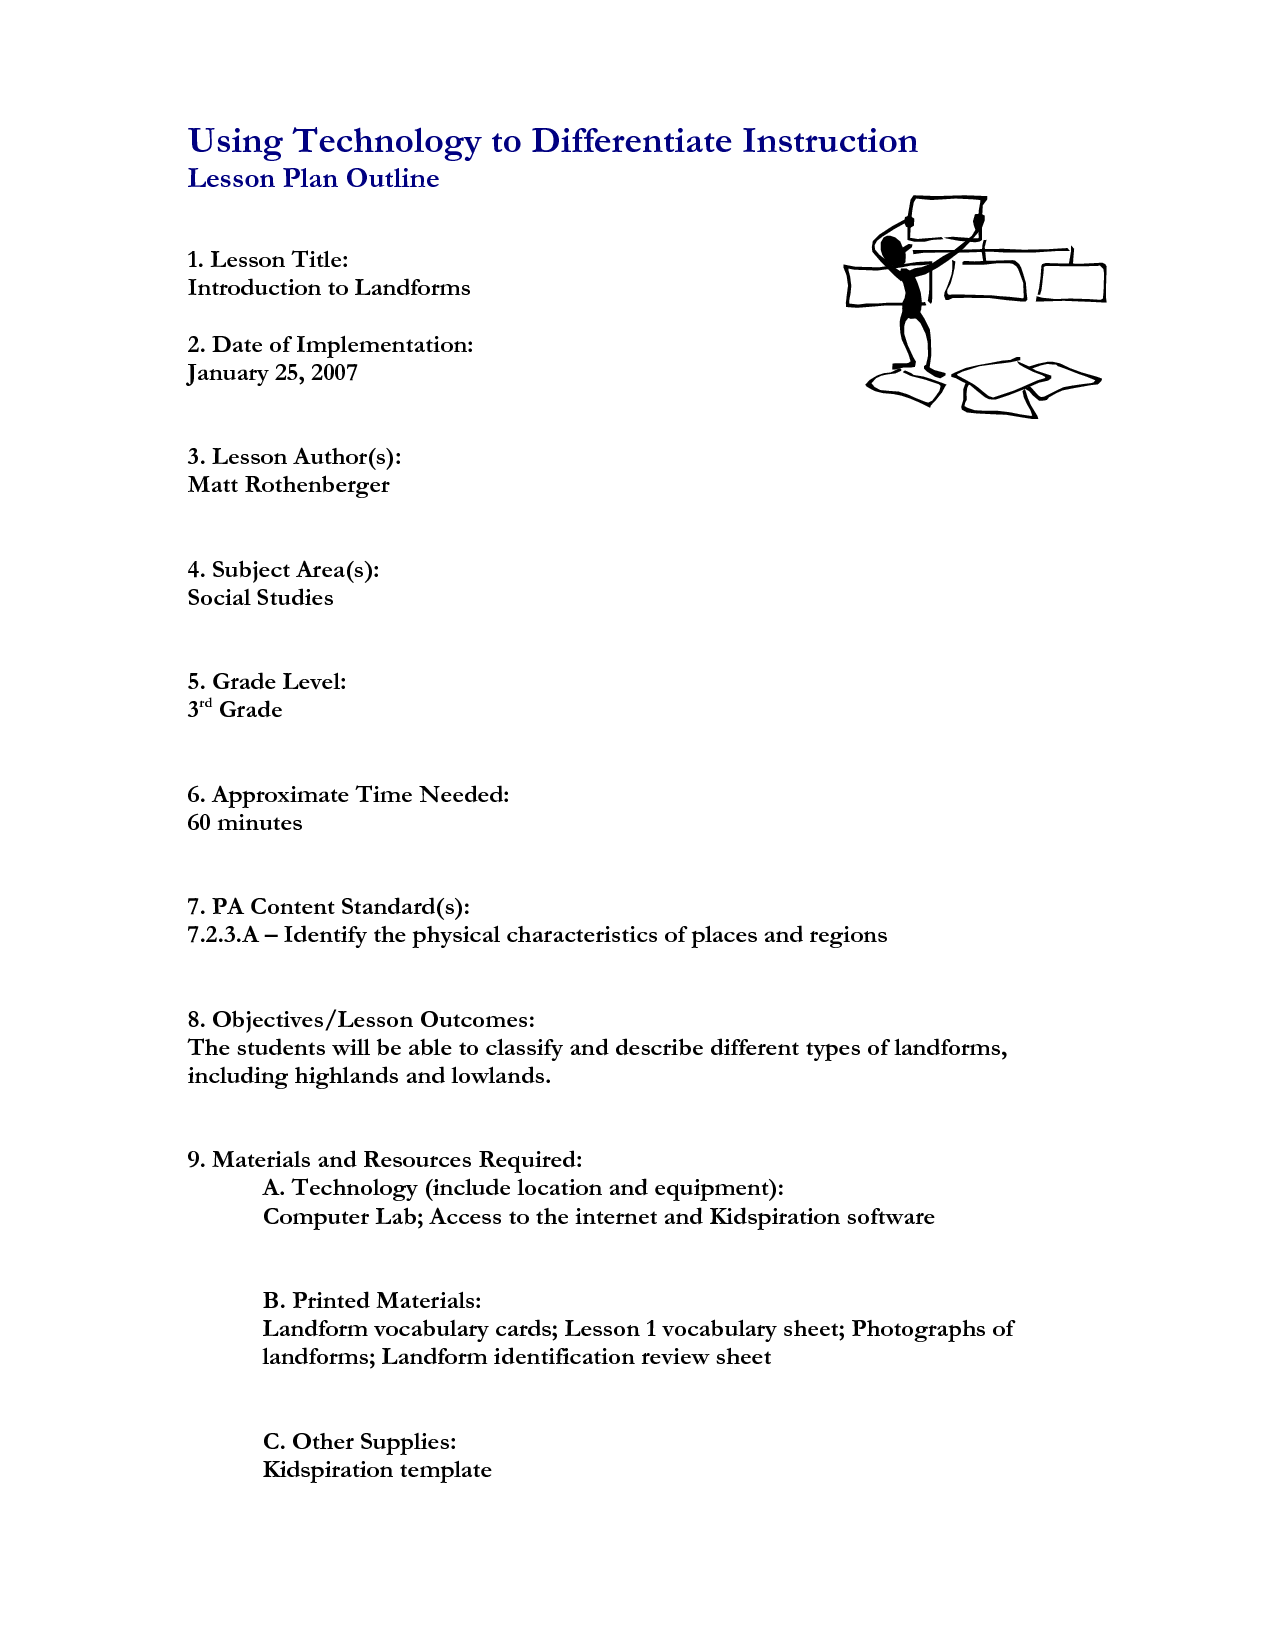 Landform Worksheet For 3rd Grade